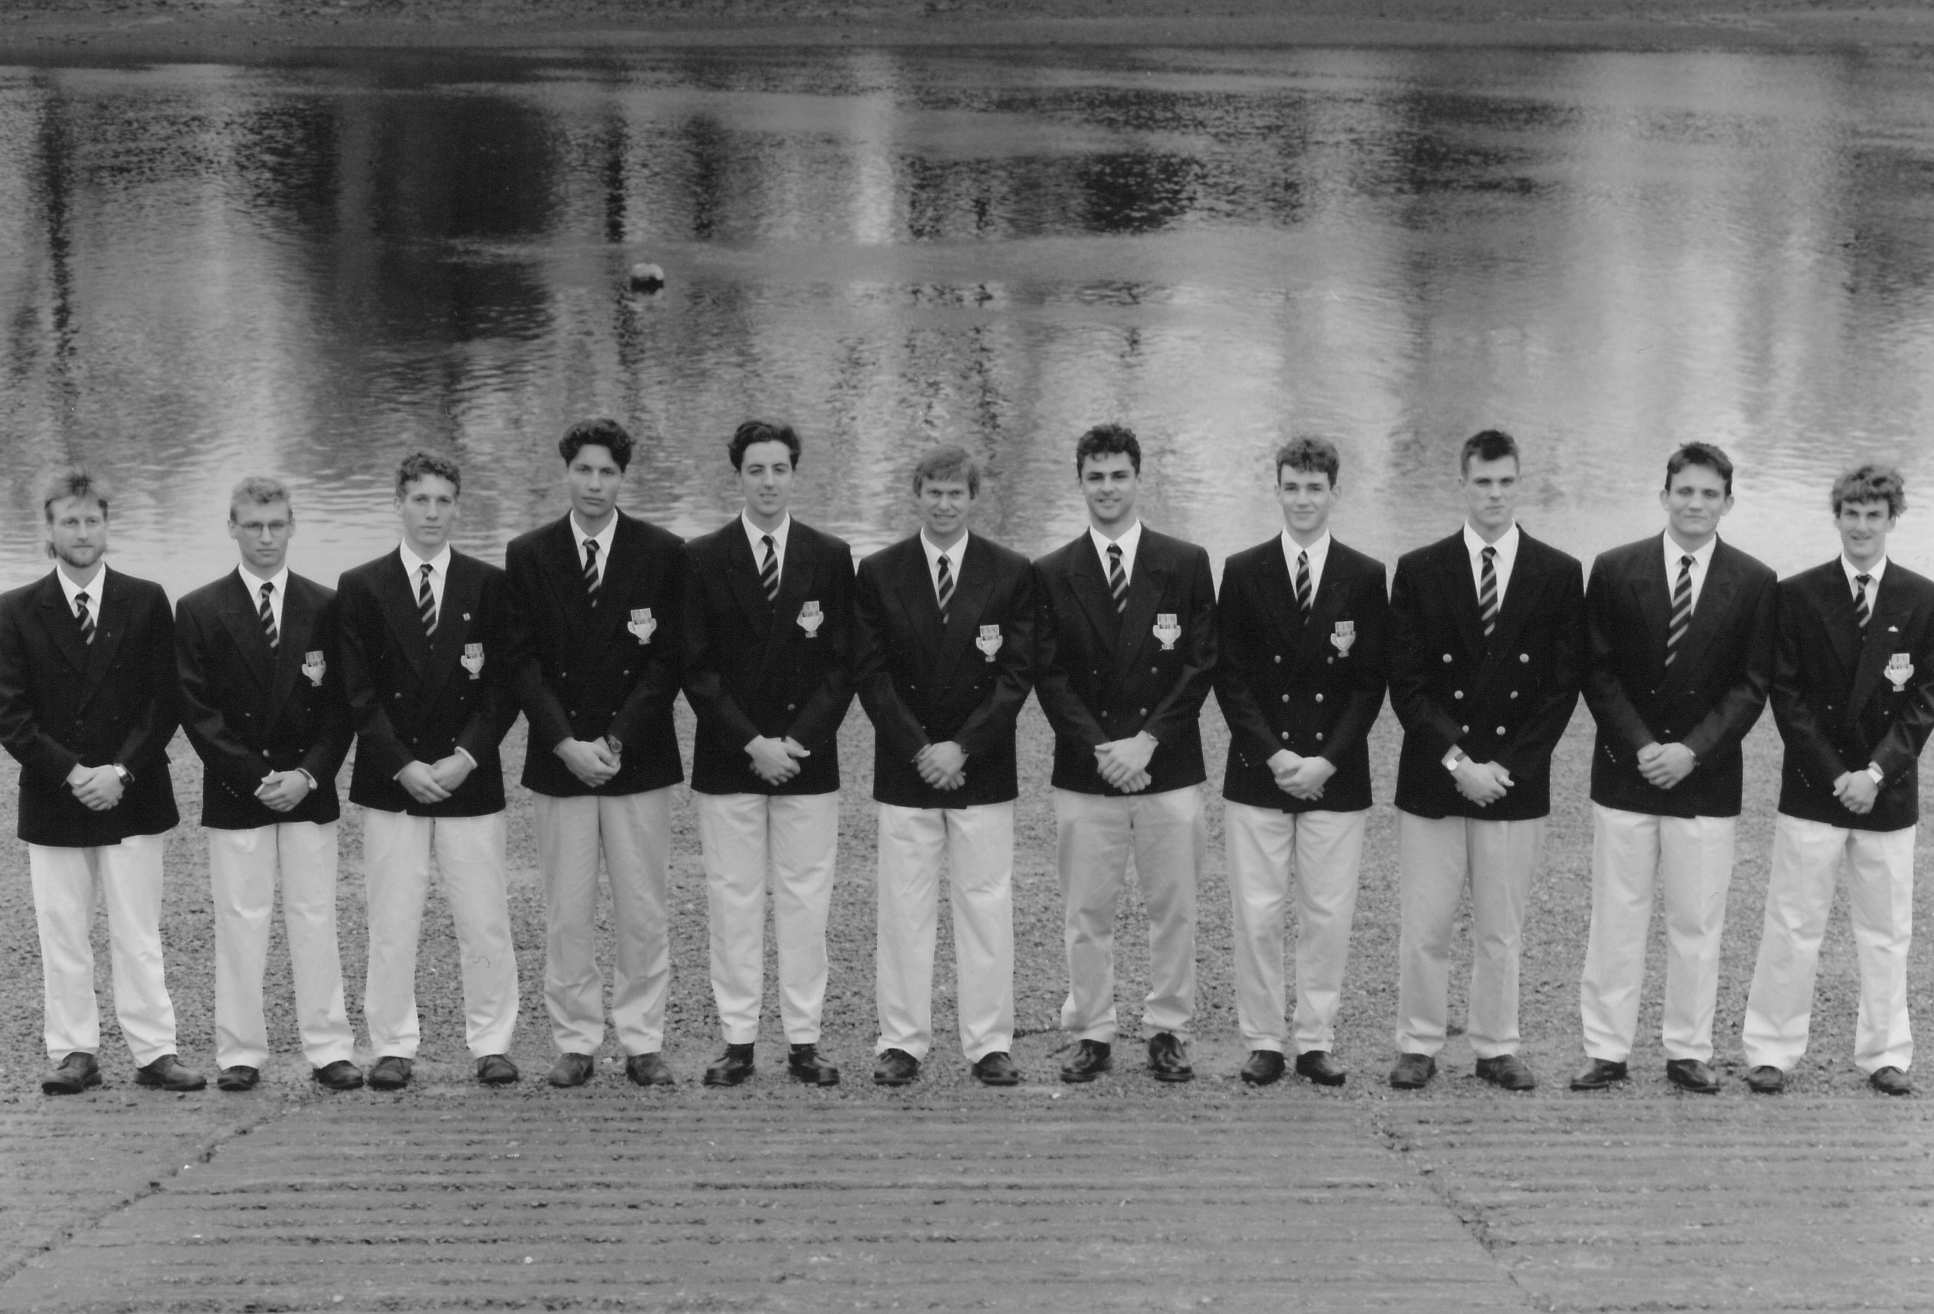 Imperial College Boat Club celebrates 100 years of rowing